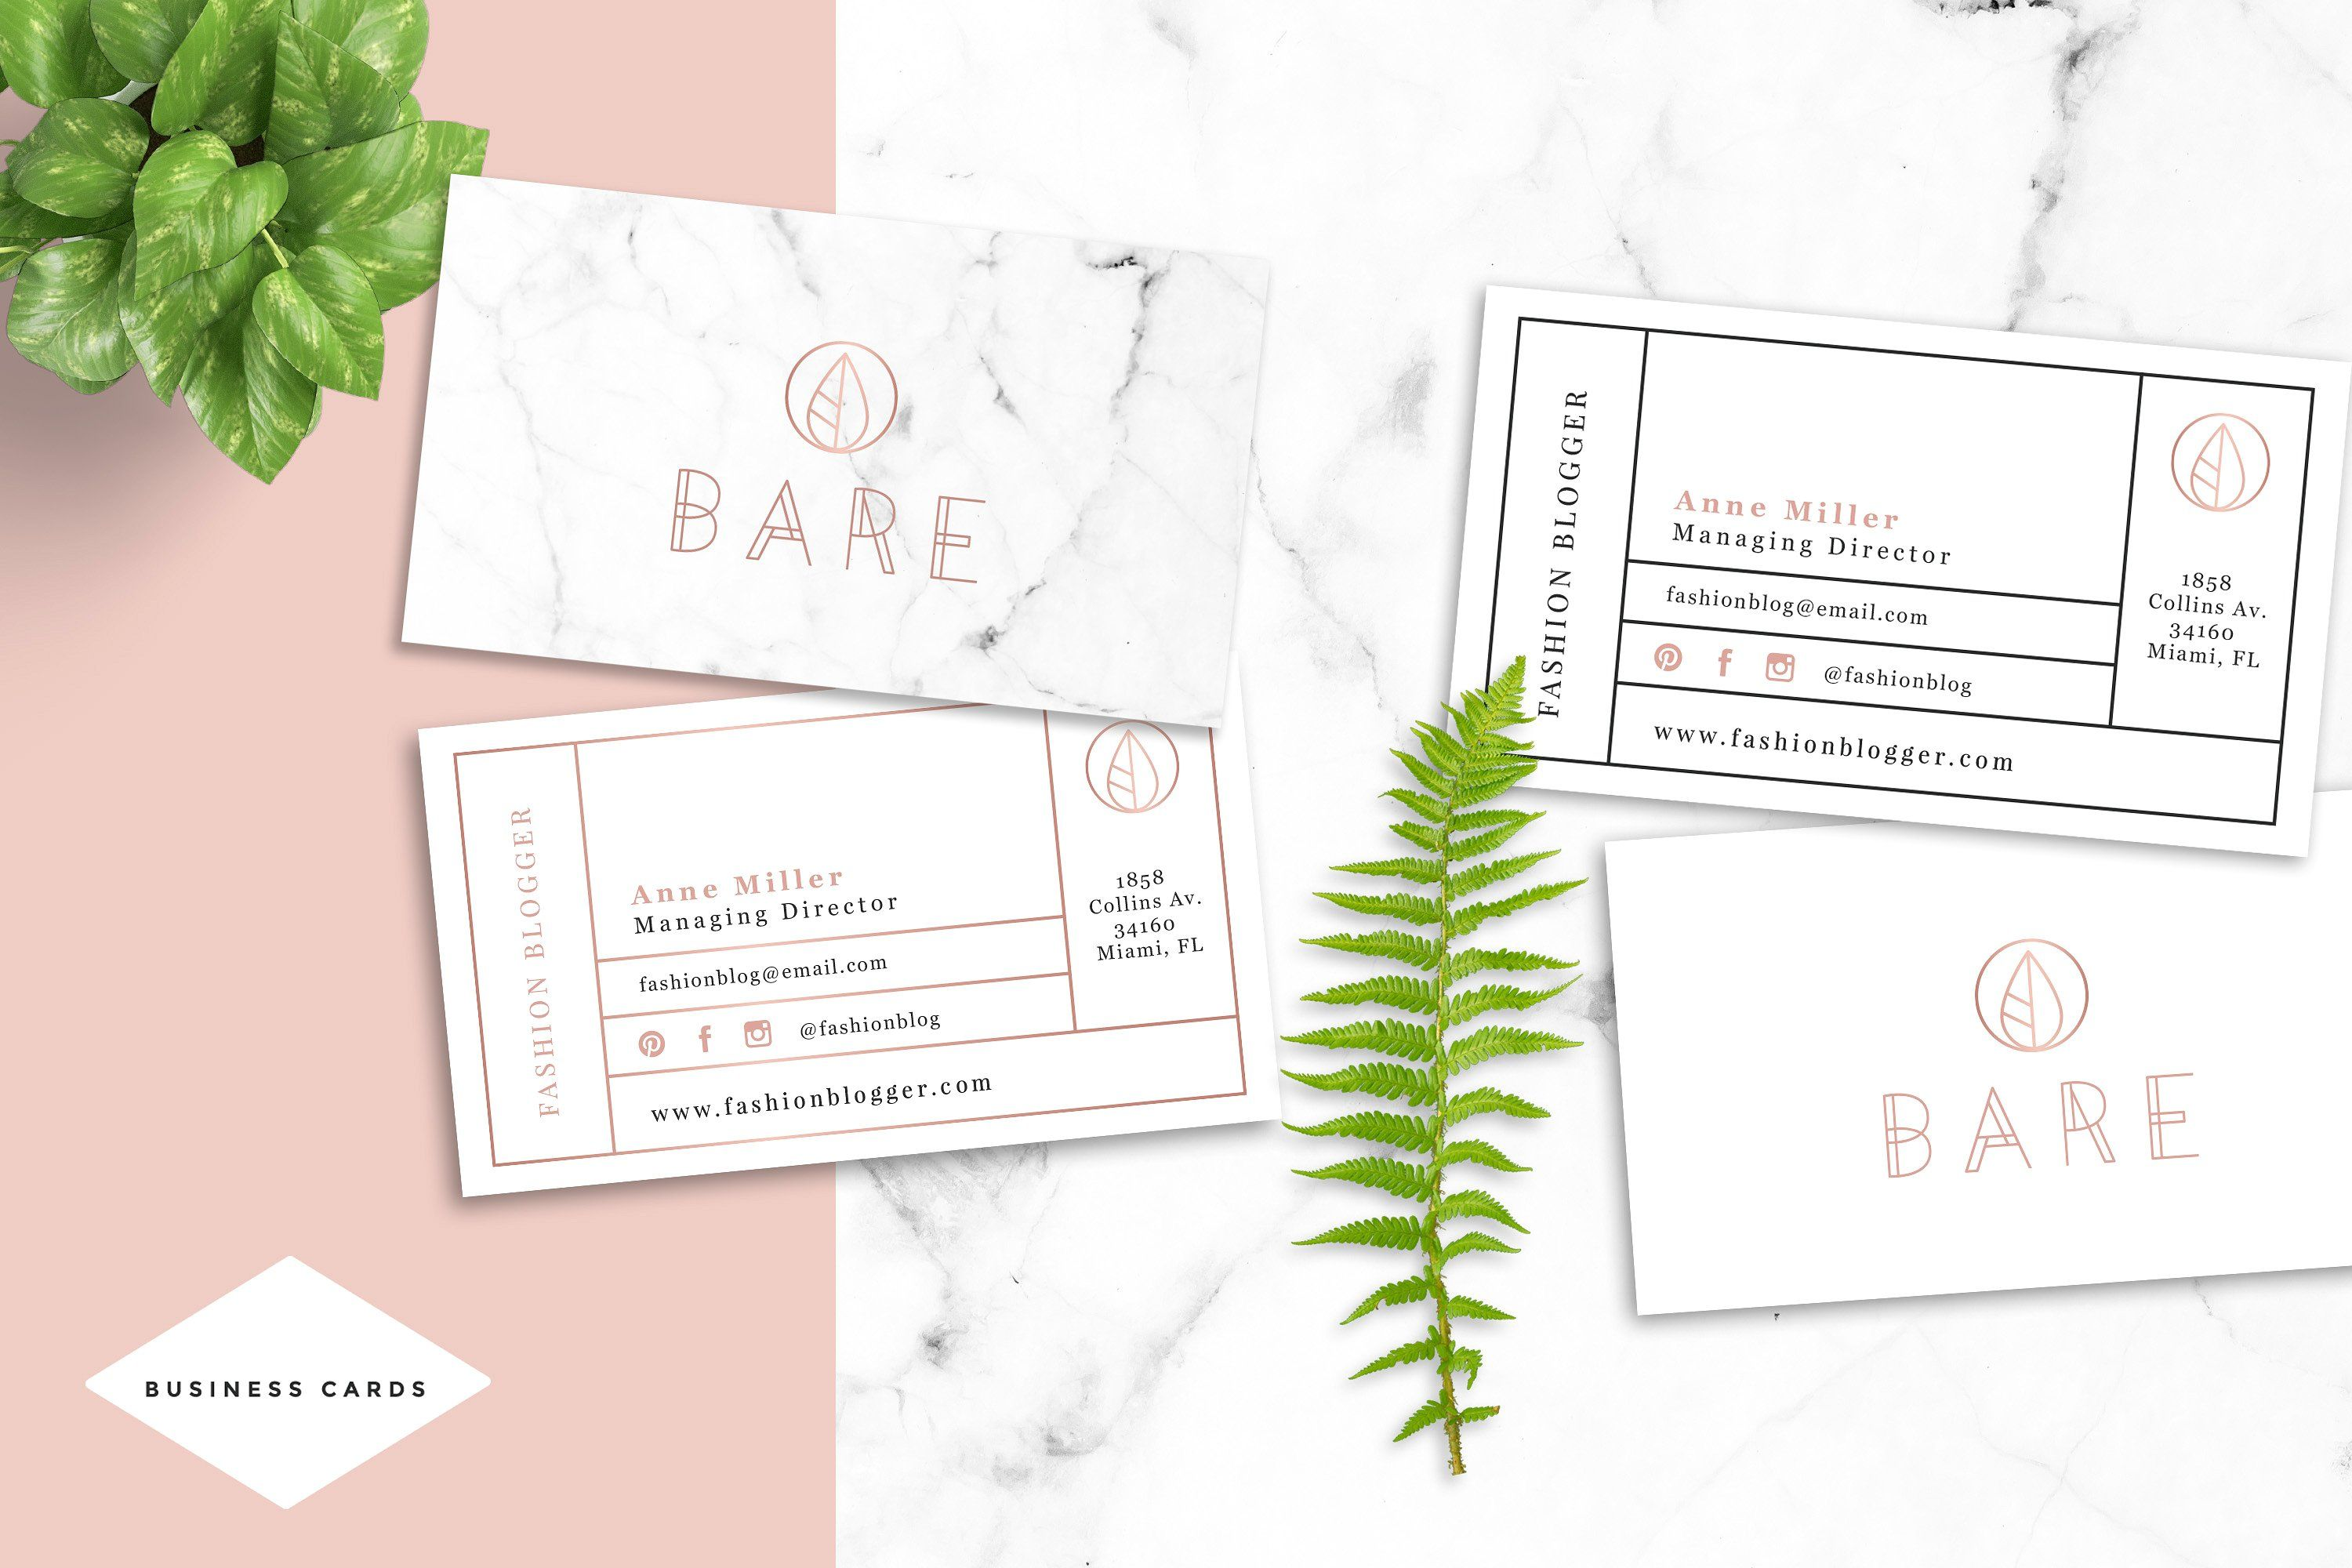 Bare Fashion Business Card Template by NordicArg